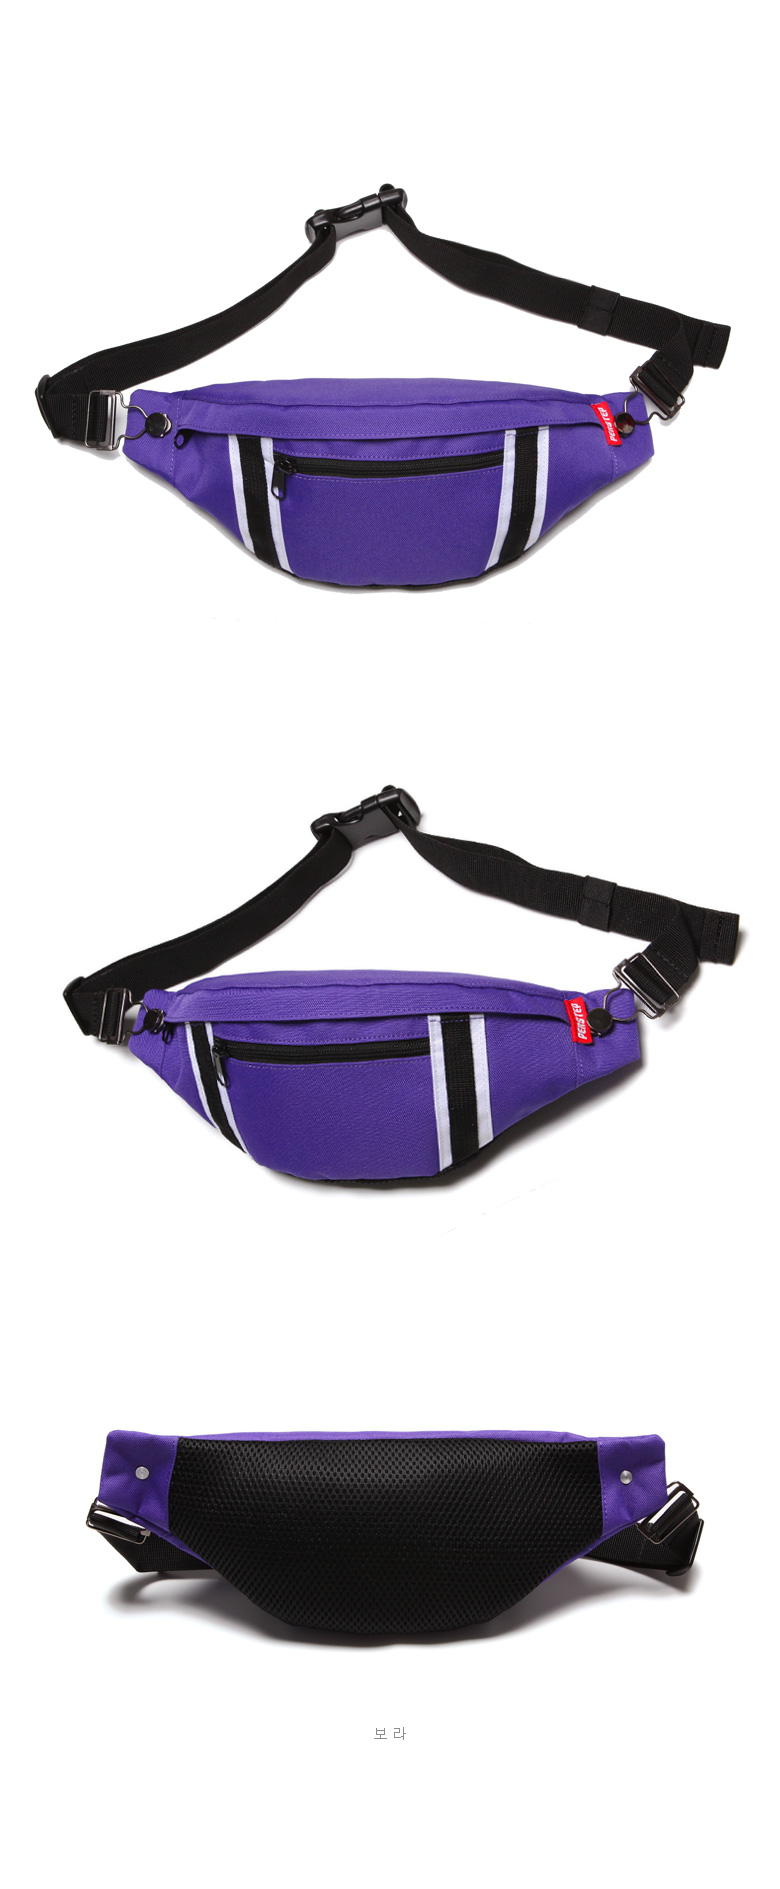 20180820_ps_solid_bag_purple_uk_01.jpg